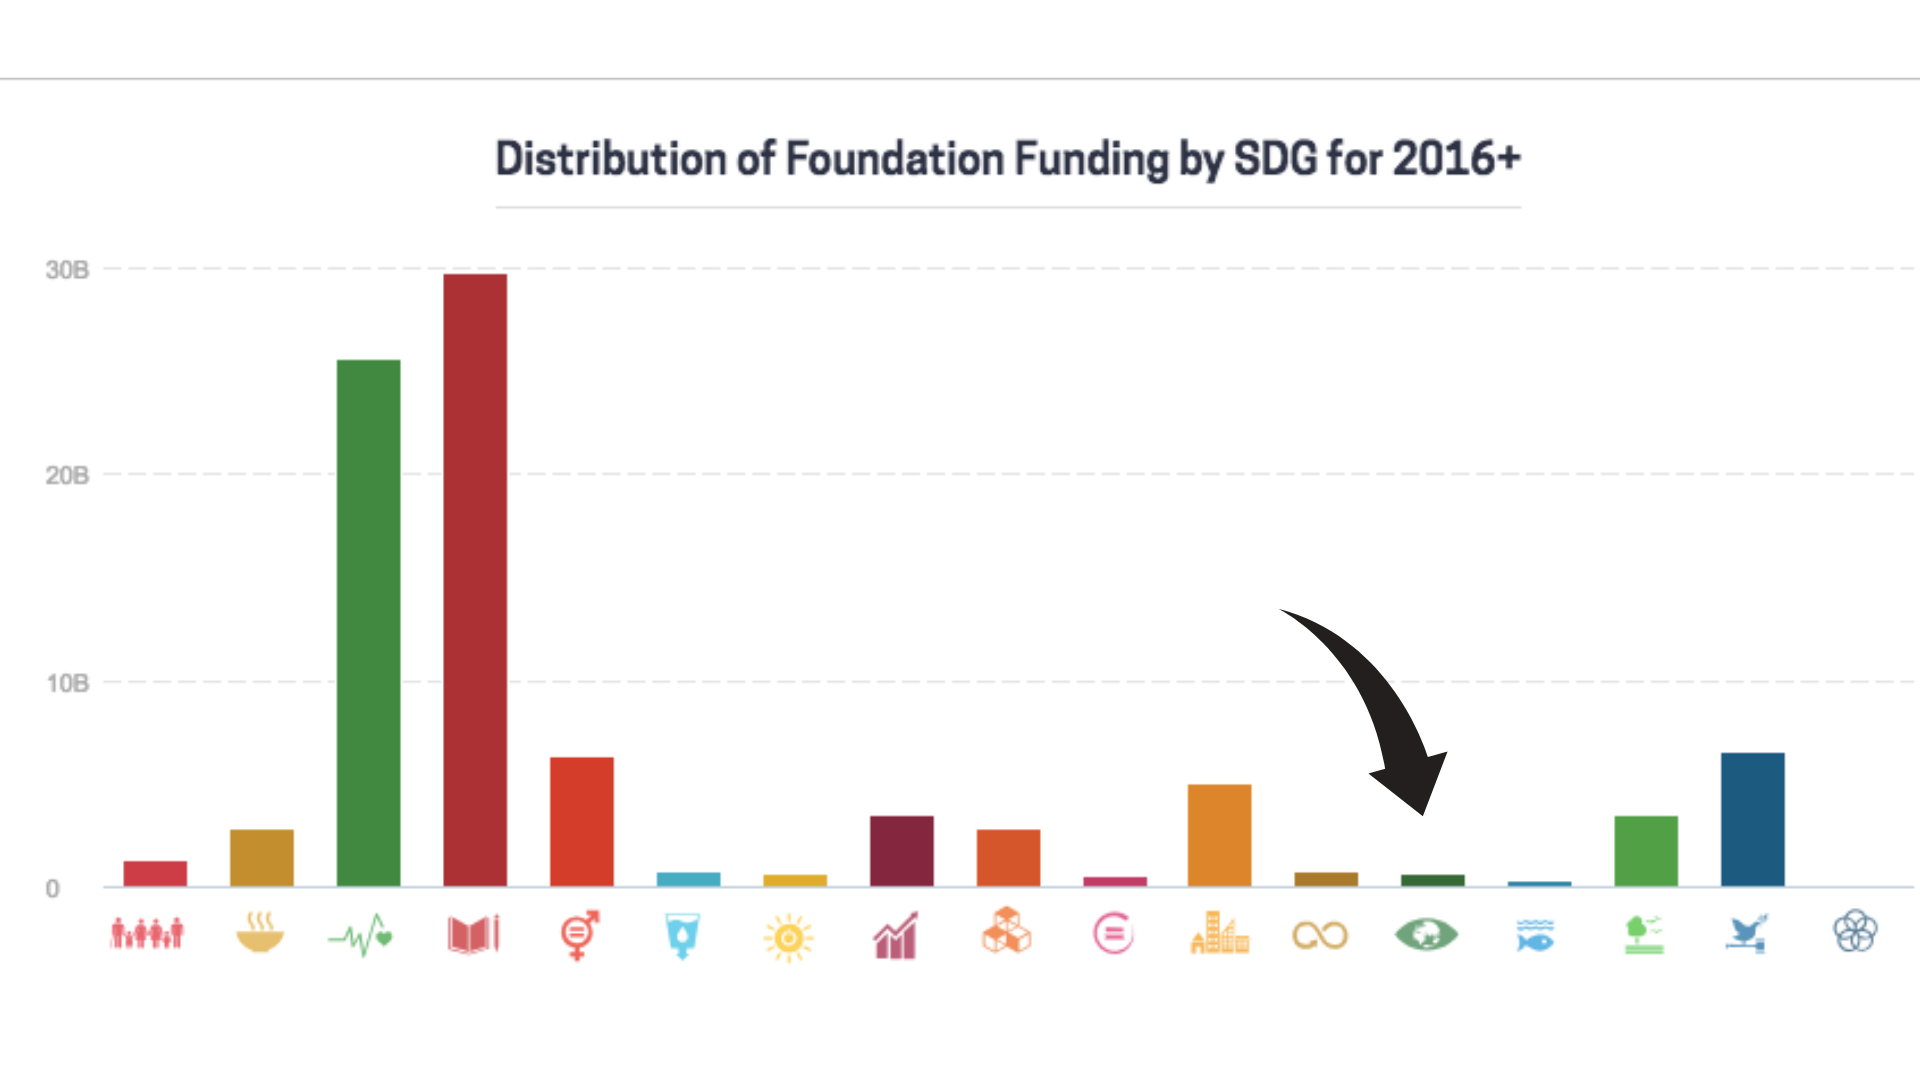 SDG - Changing Climate Solution Fund Allocation